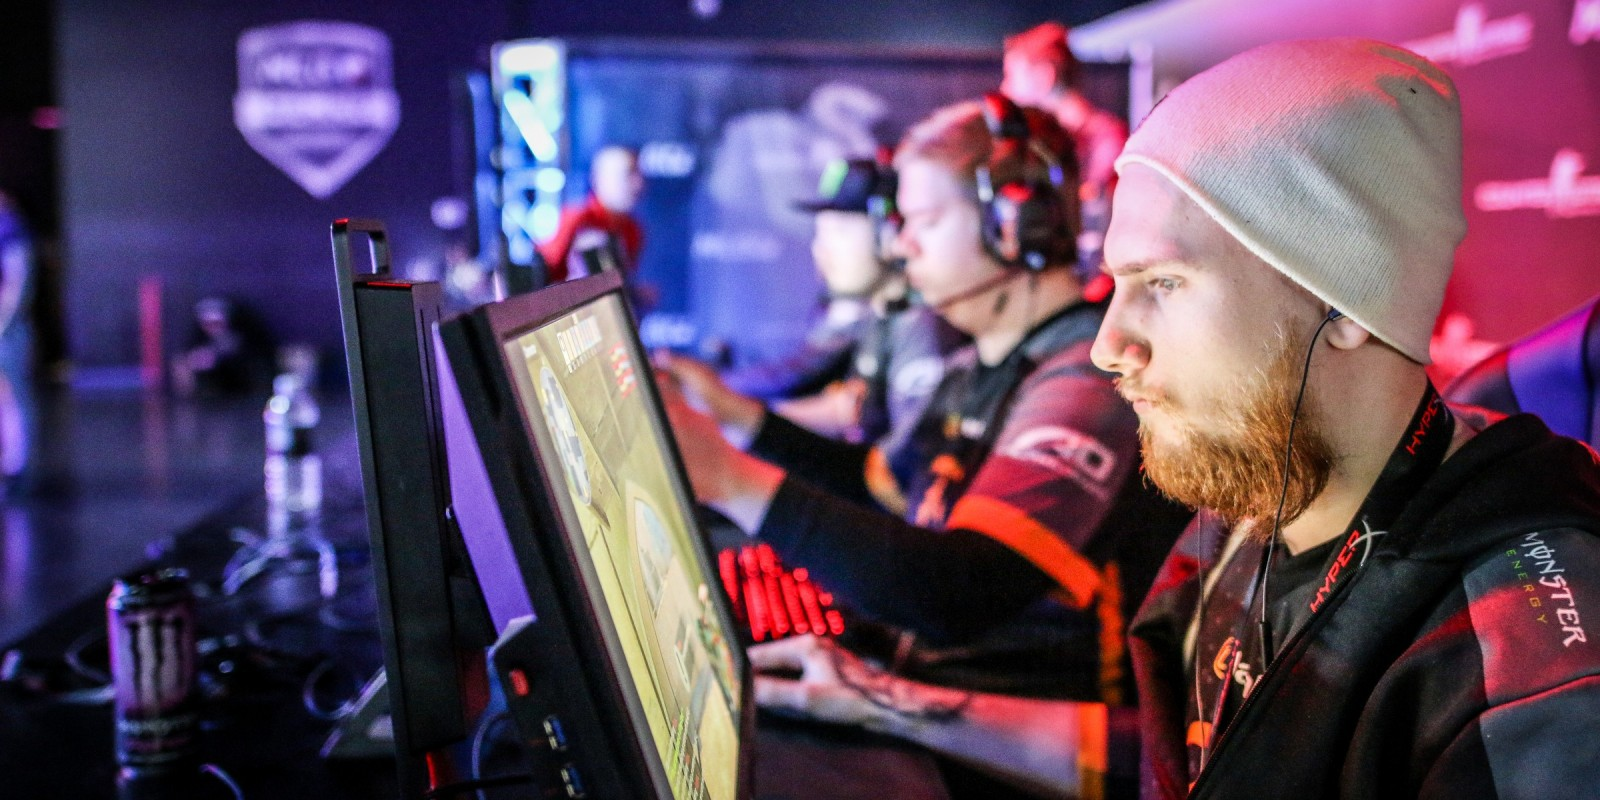 Team Fnatic at the 2016 MLG CSGO in Ohio